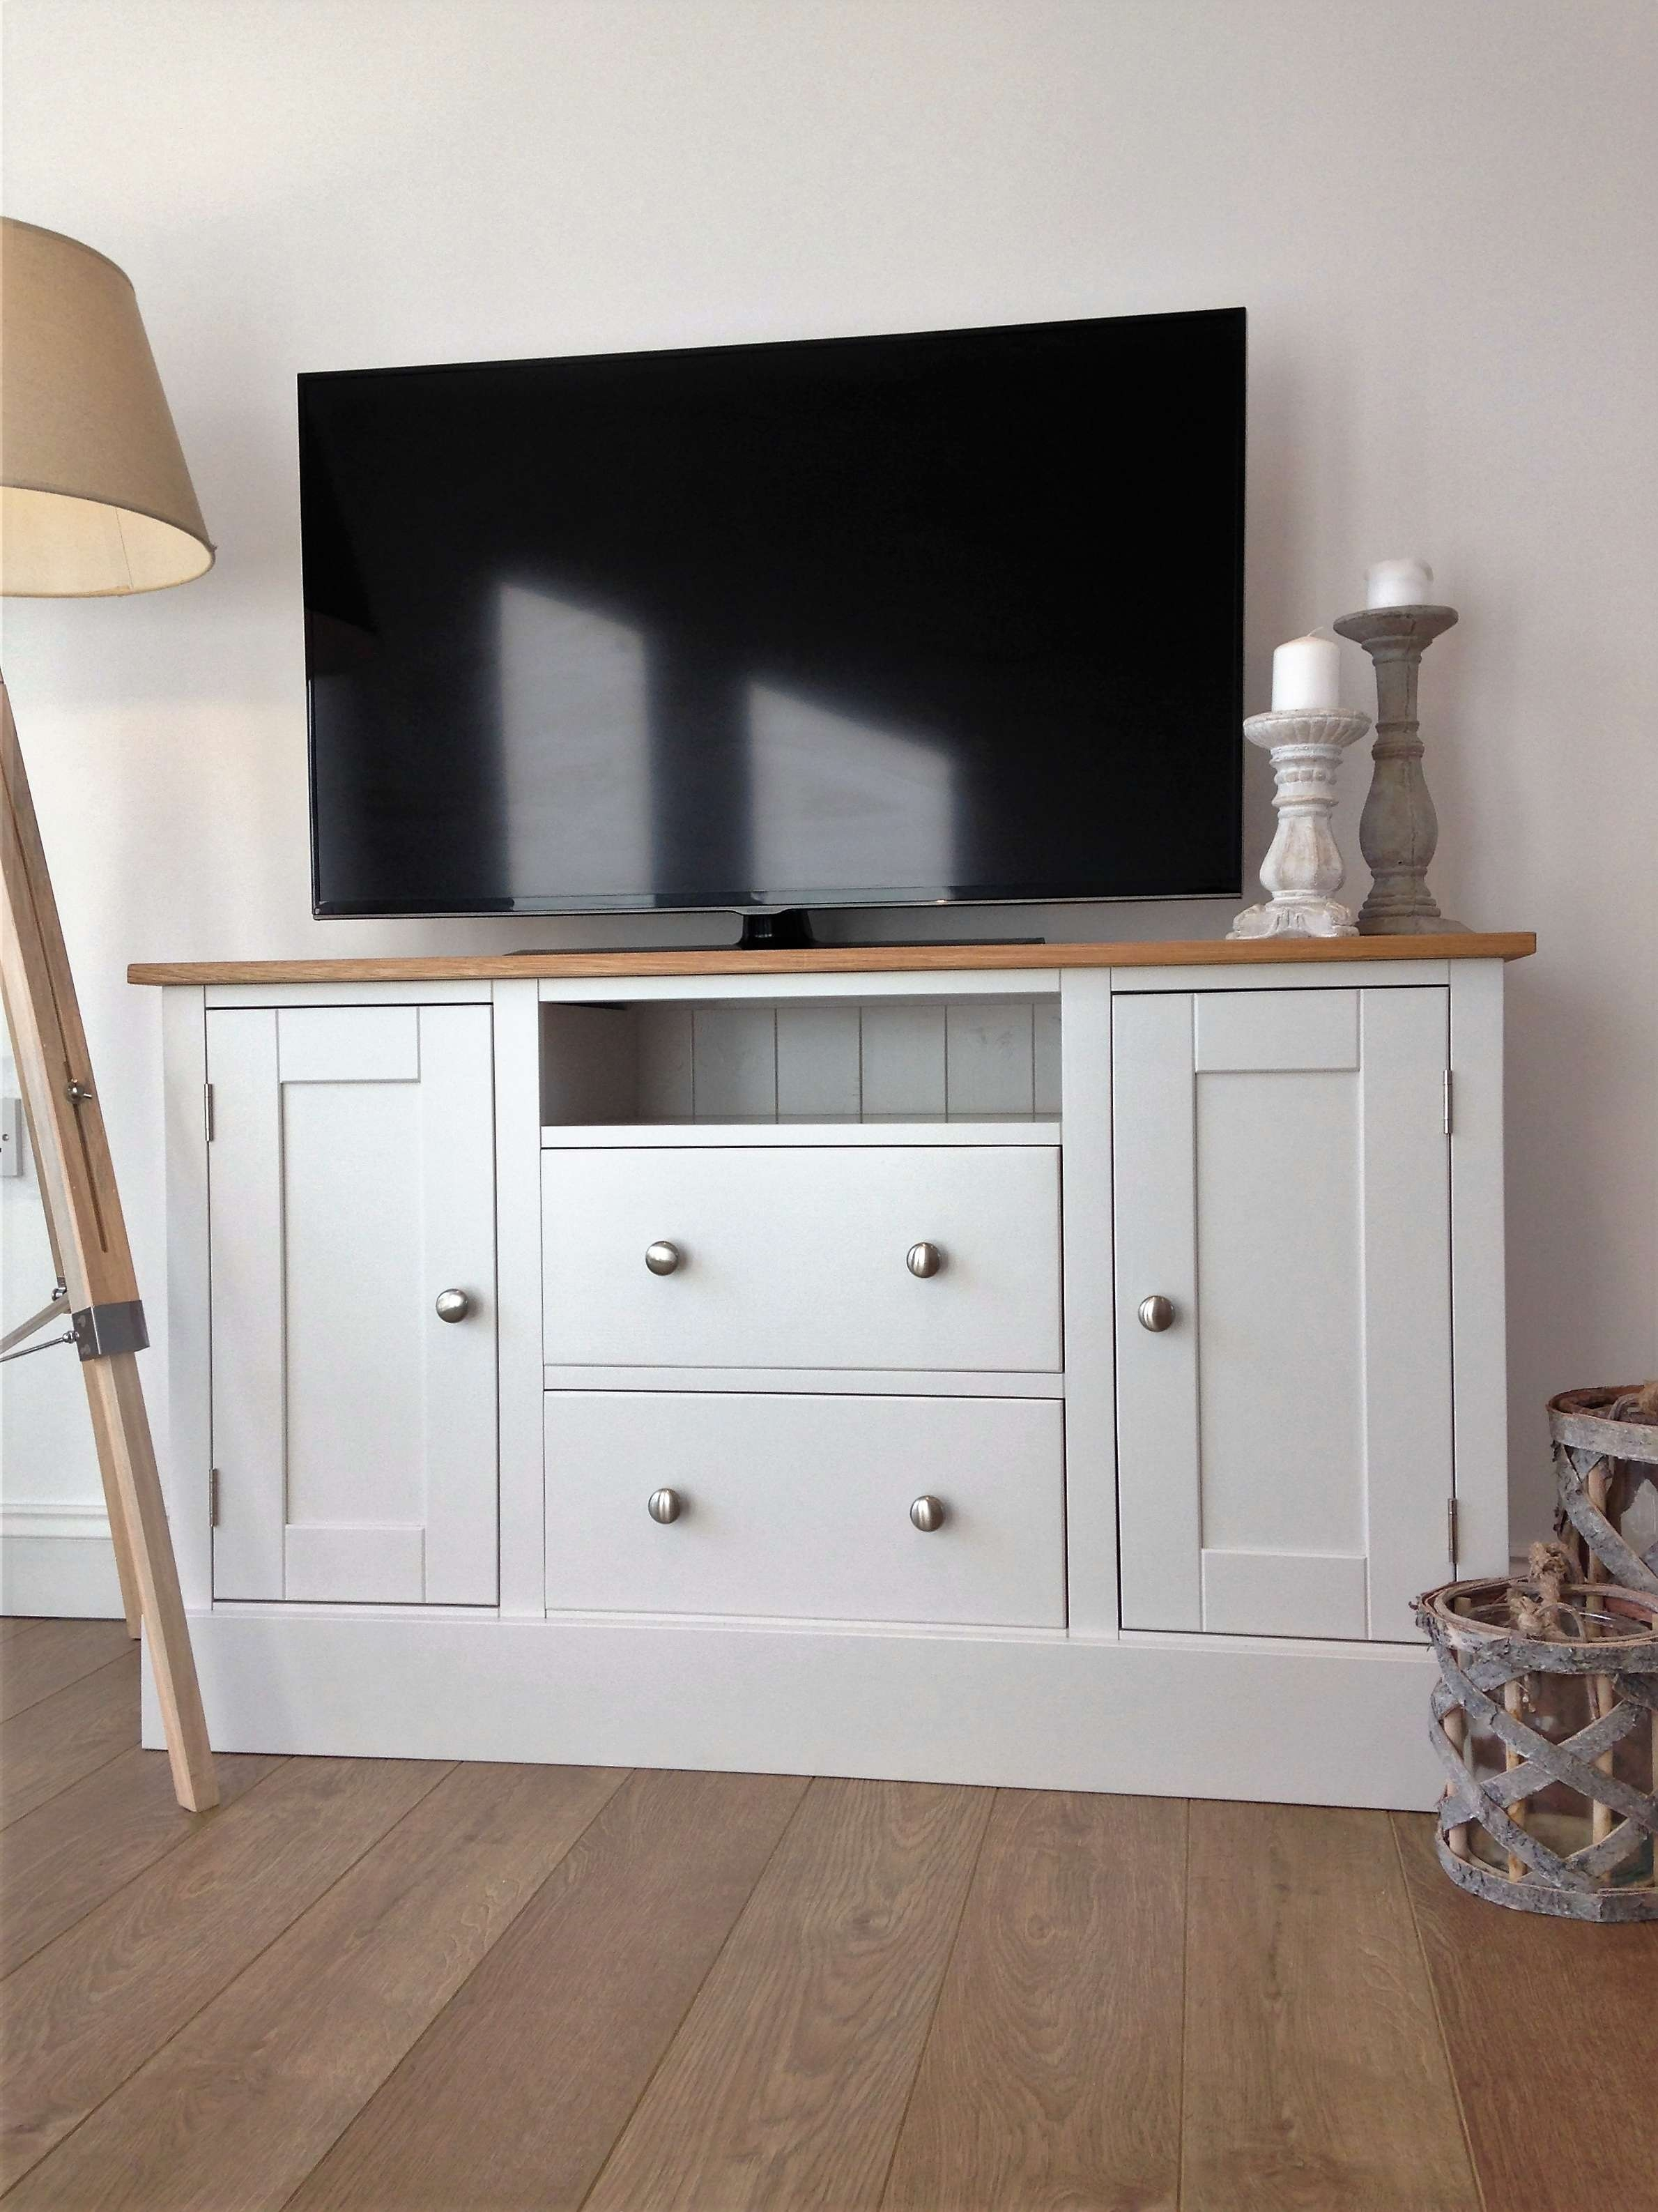 4Ft Painted Tv Cabinet Made Of Solid Oak & Pine – Nest At Number 20 With White Painted Tv Cabinets (View 1 of 20)